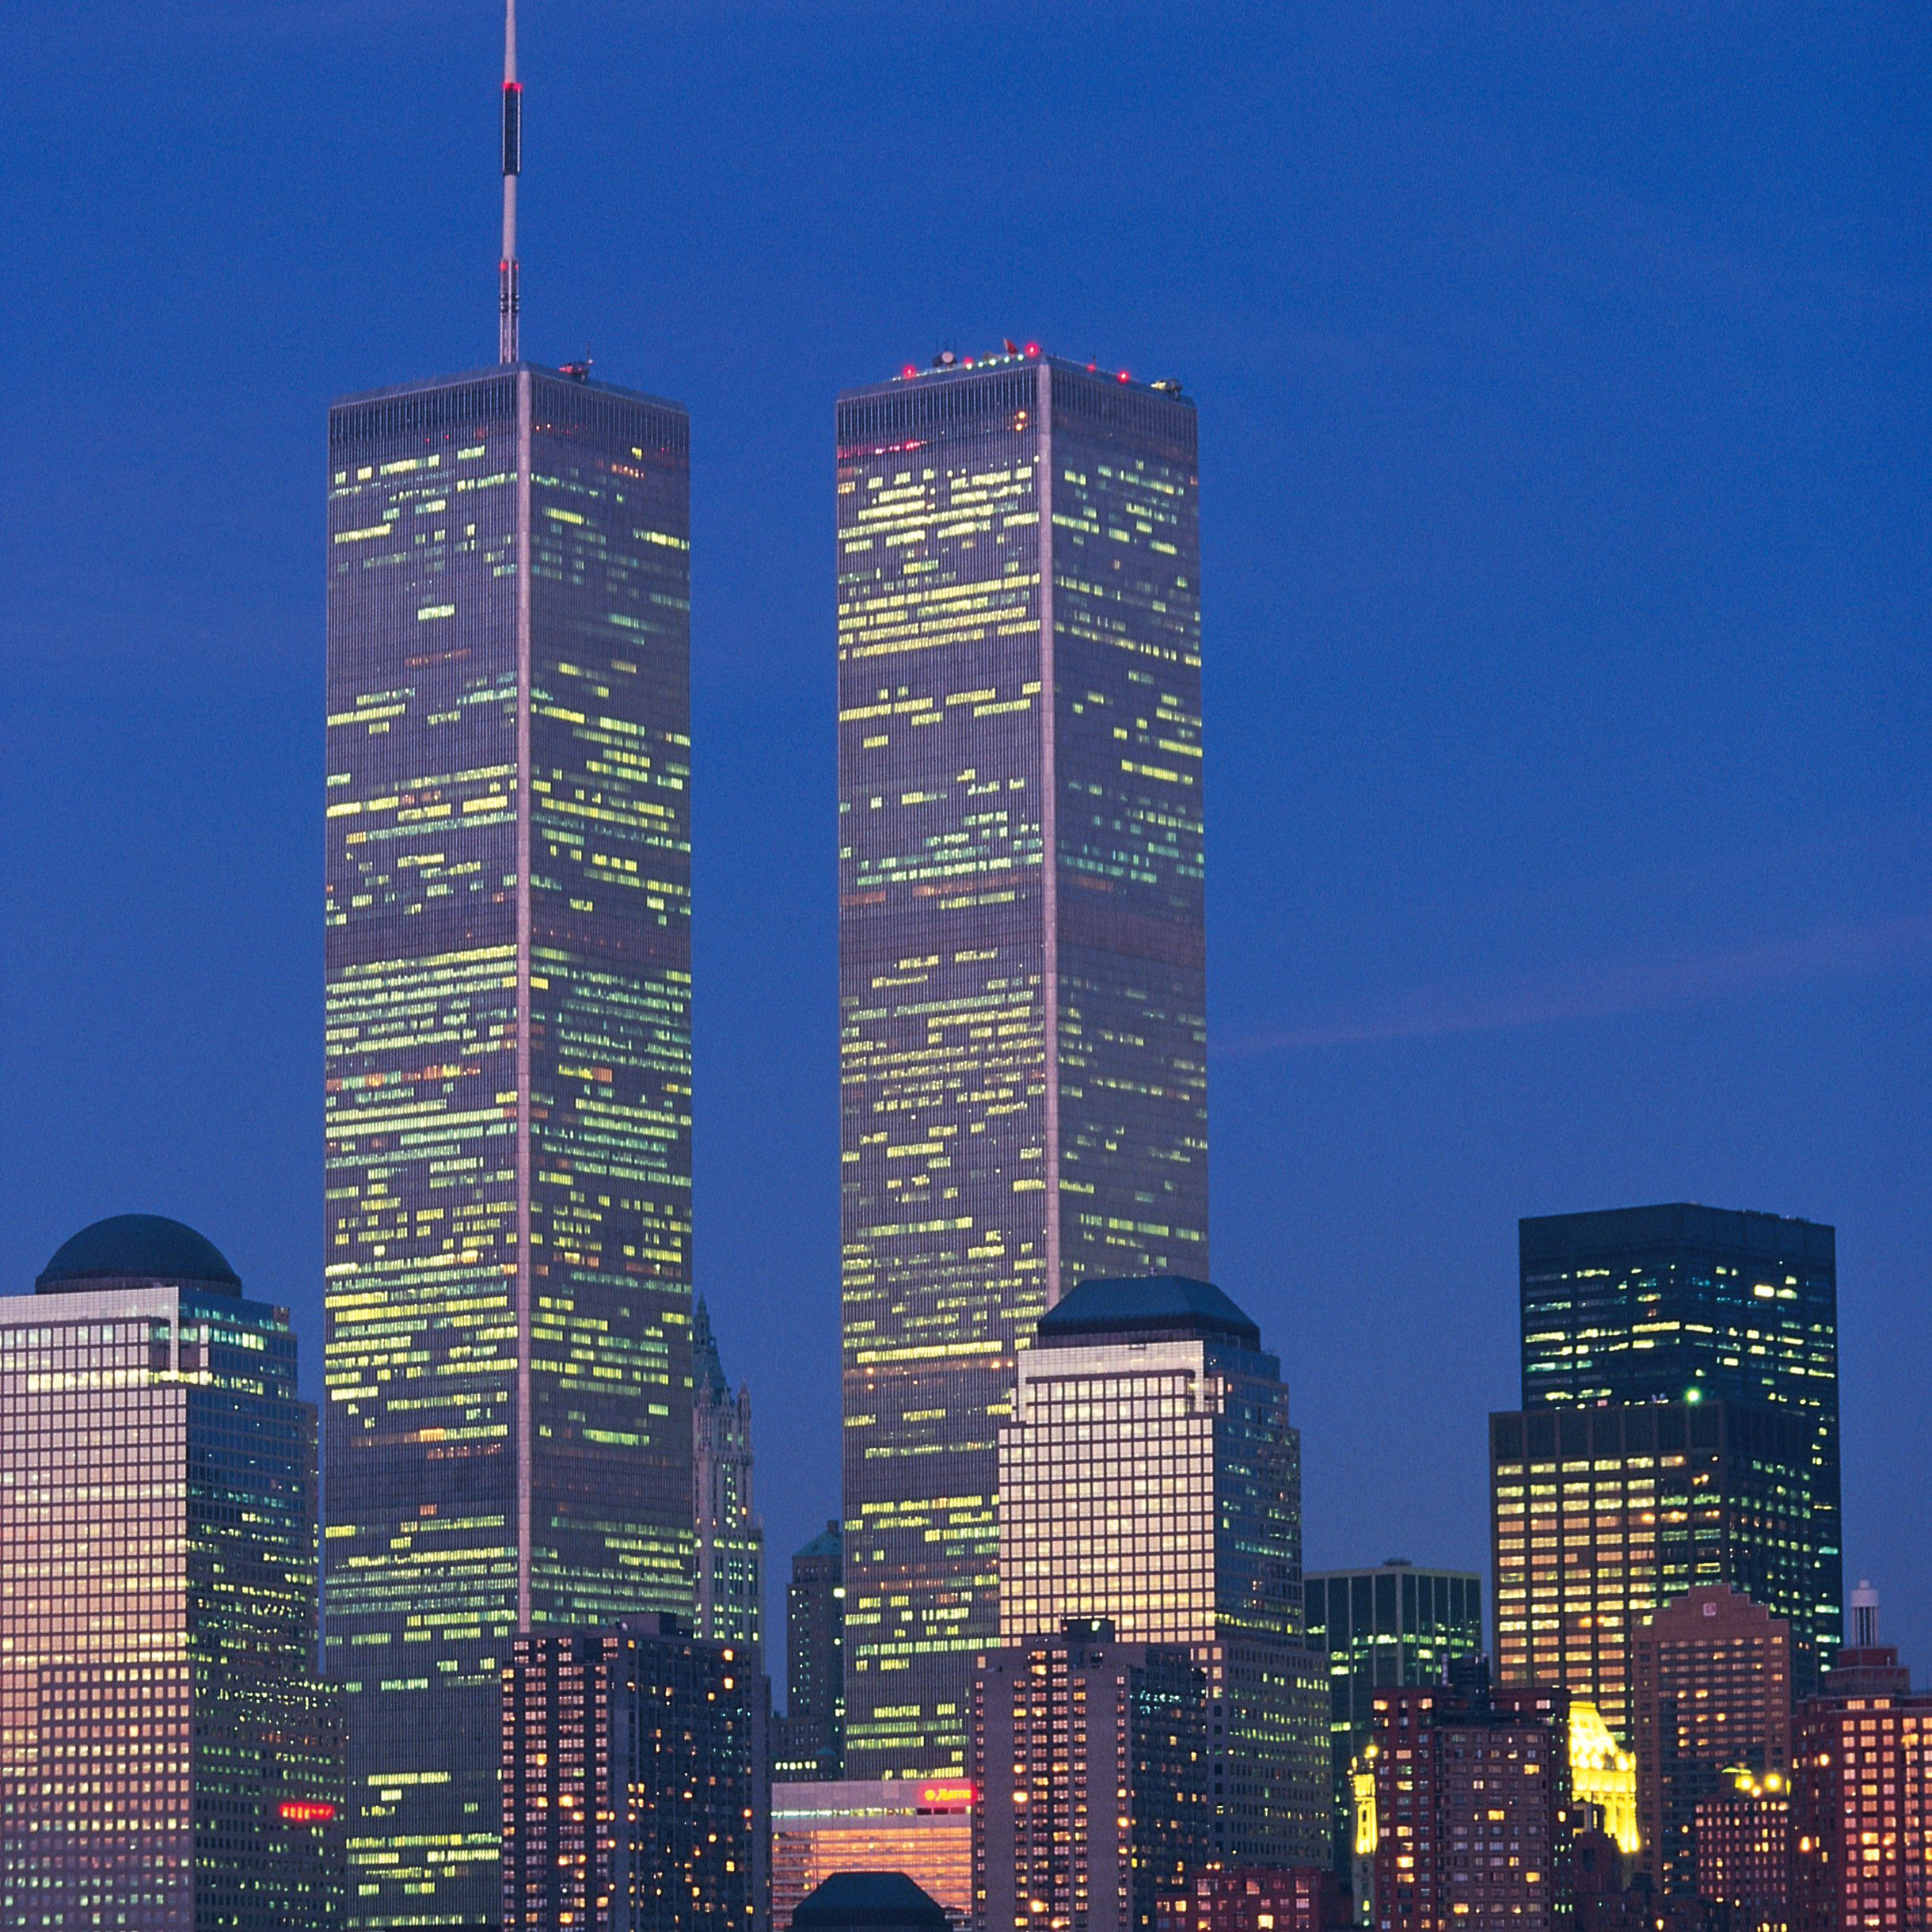 Images of the World Trade Center, 1970-2001